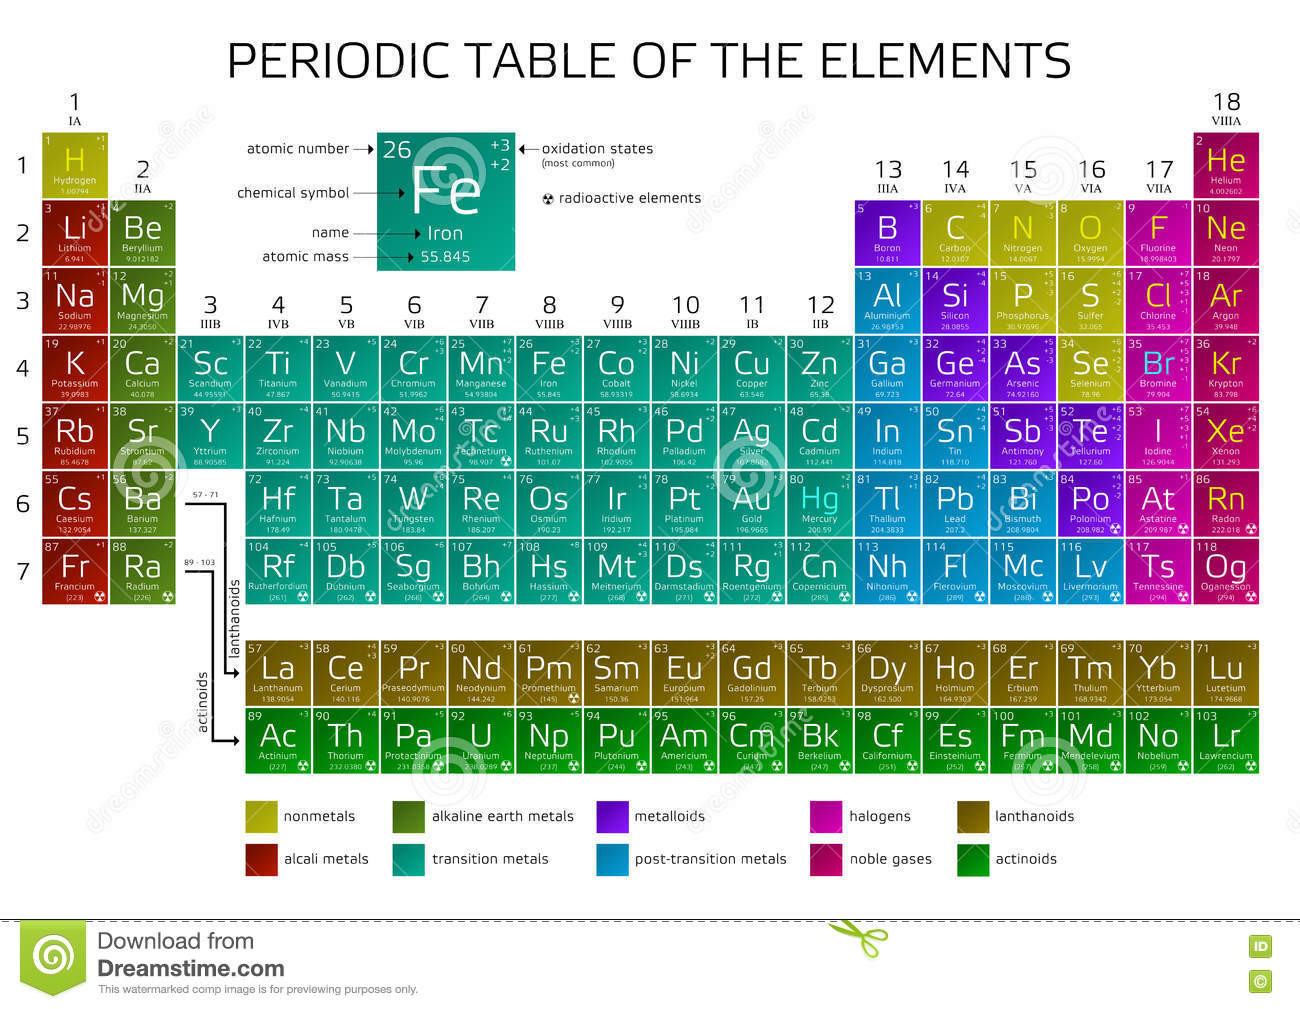 new elements in the periodic table nihonium moscovium